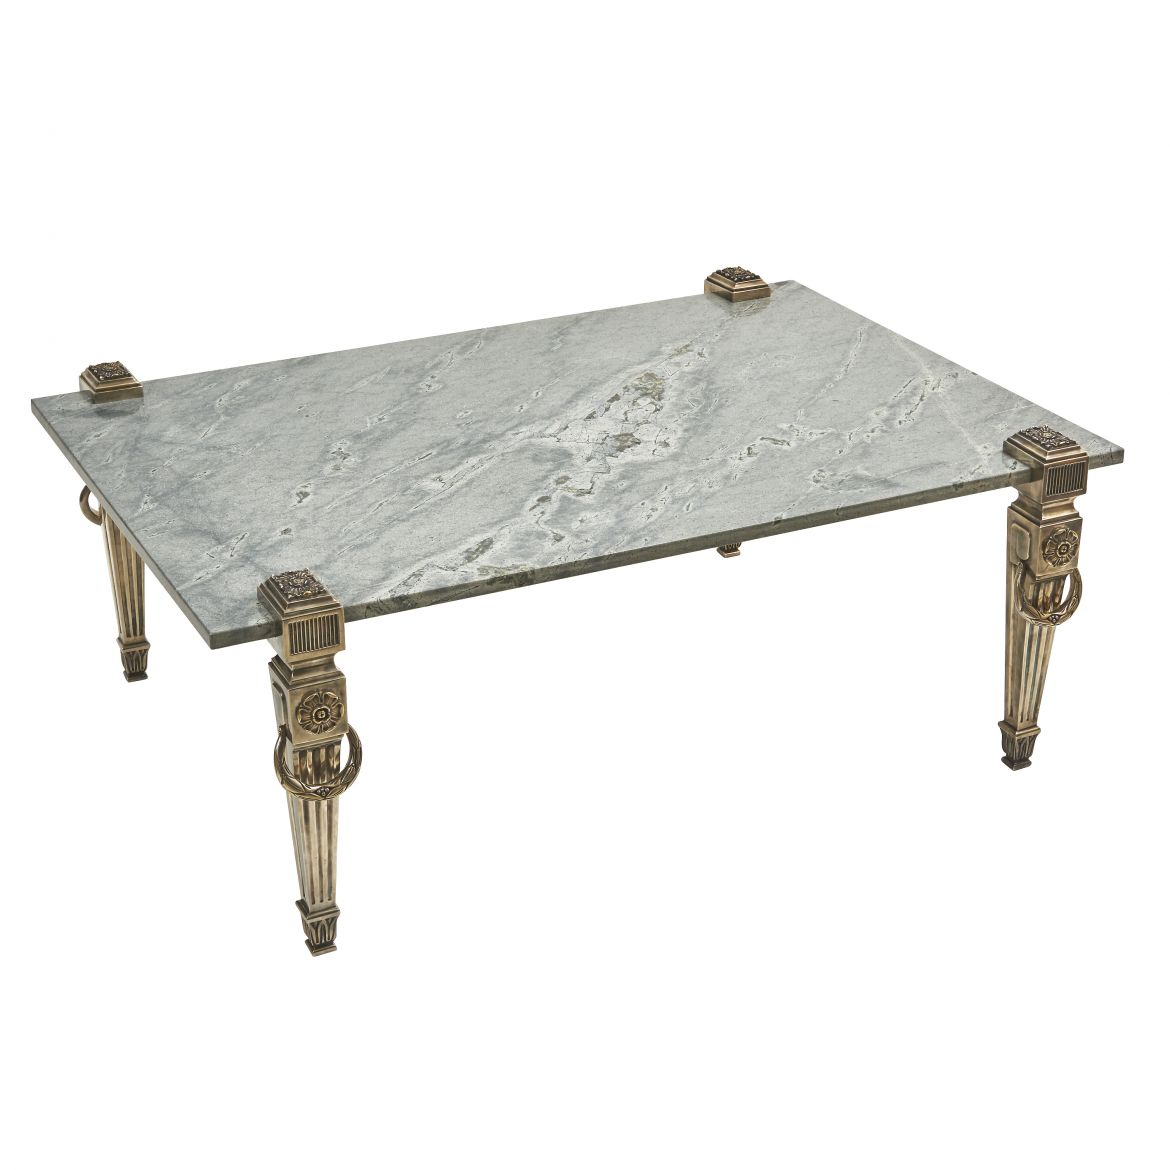 English Silver Plated Neoclassical Style Coffee Table